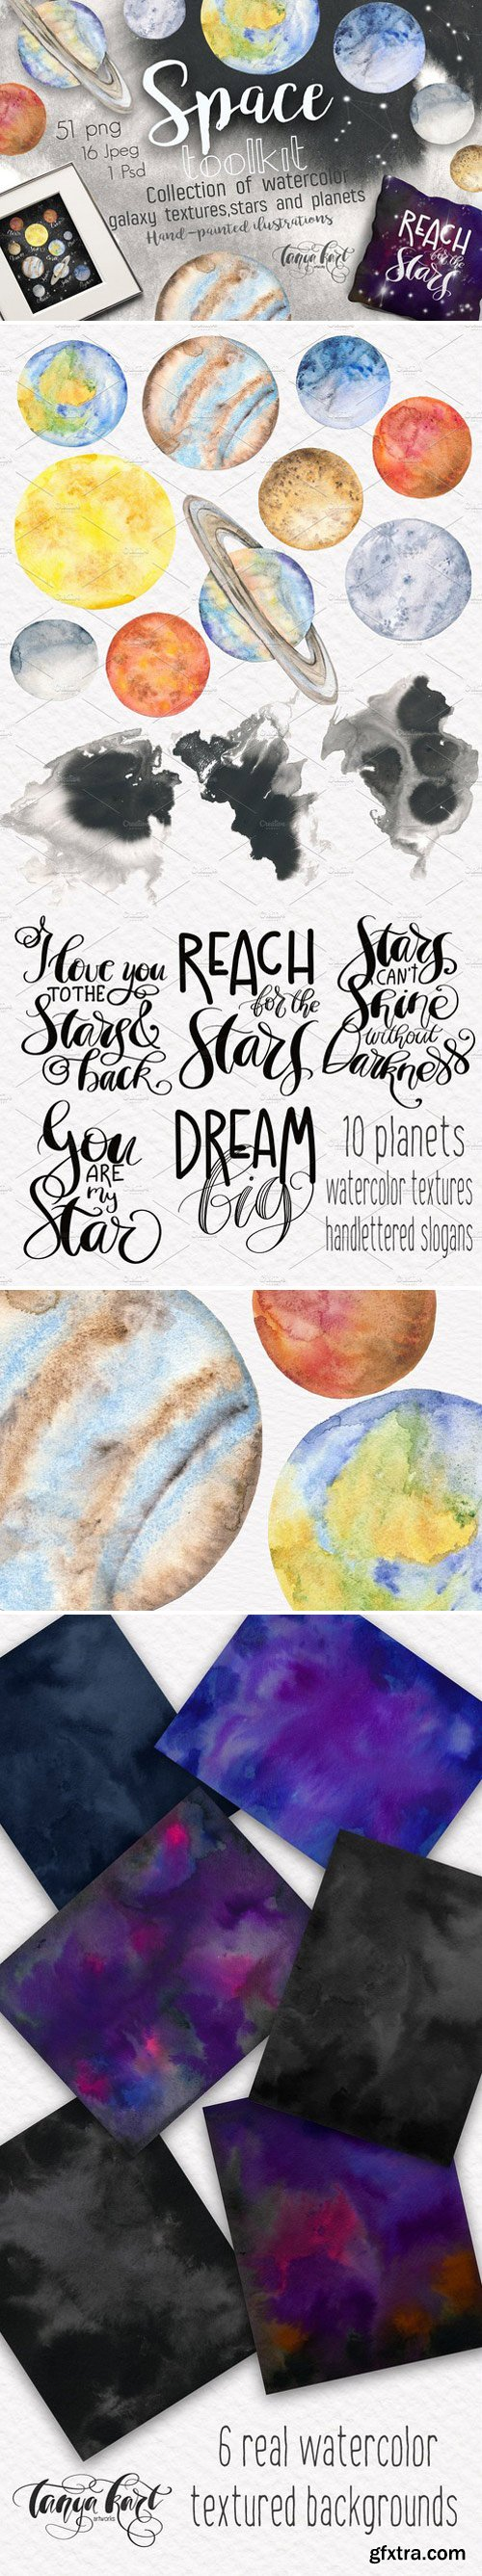 CM - Space Toolkit Watercolor Planets 2354644